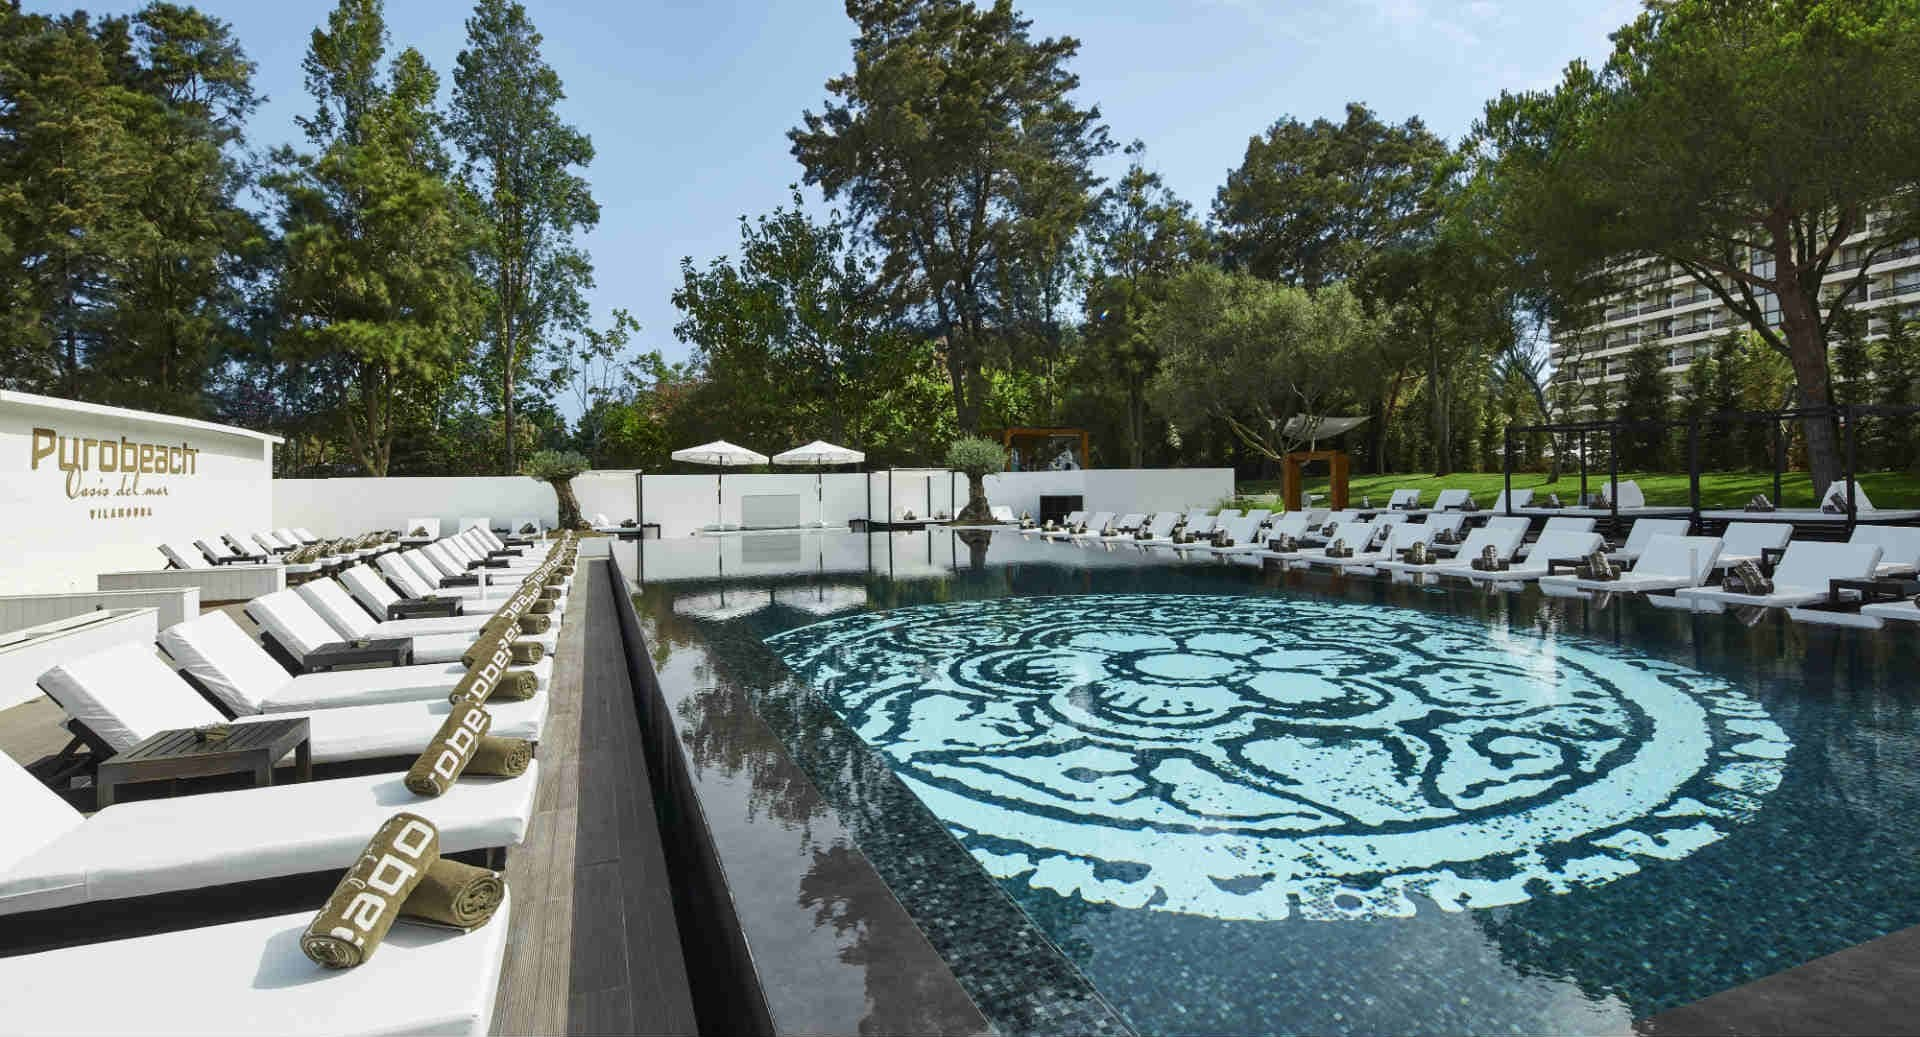 Anantara Vilamoura anantara spa Anantara SPA is one of the most luxurious spas in the world Anantara Vilamoura 3